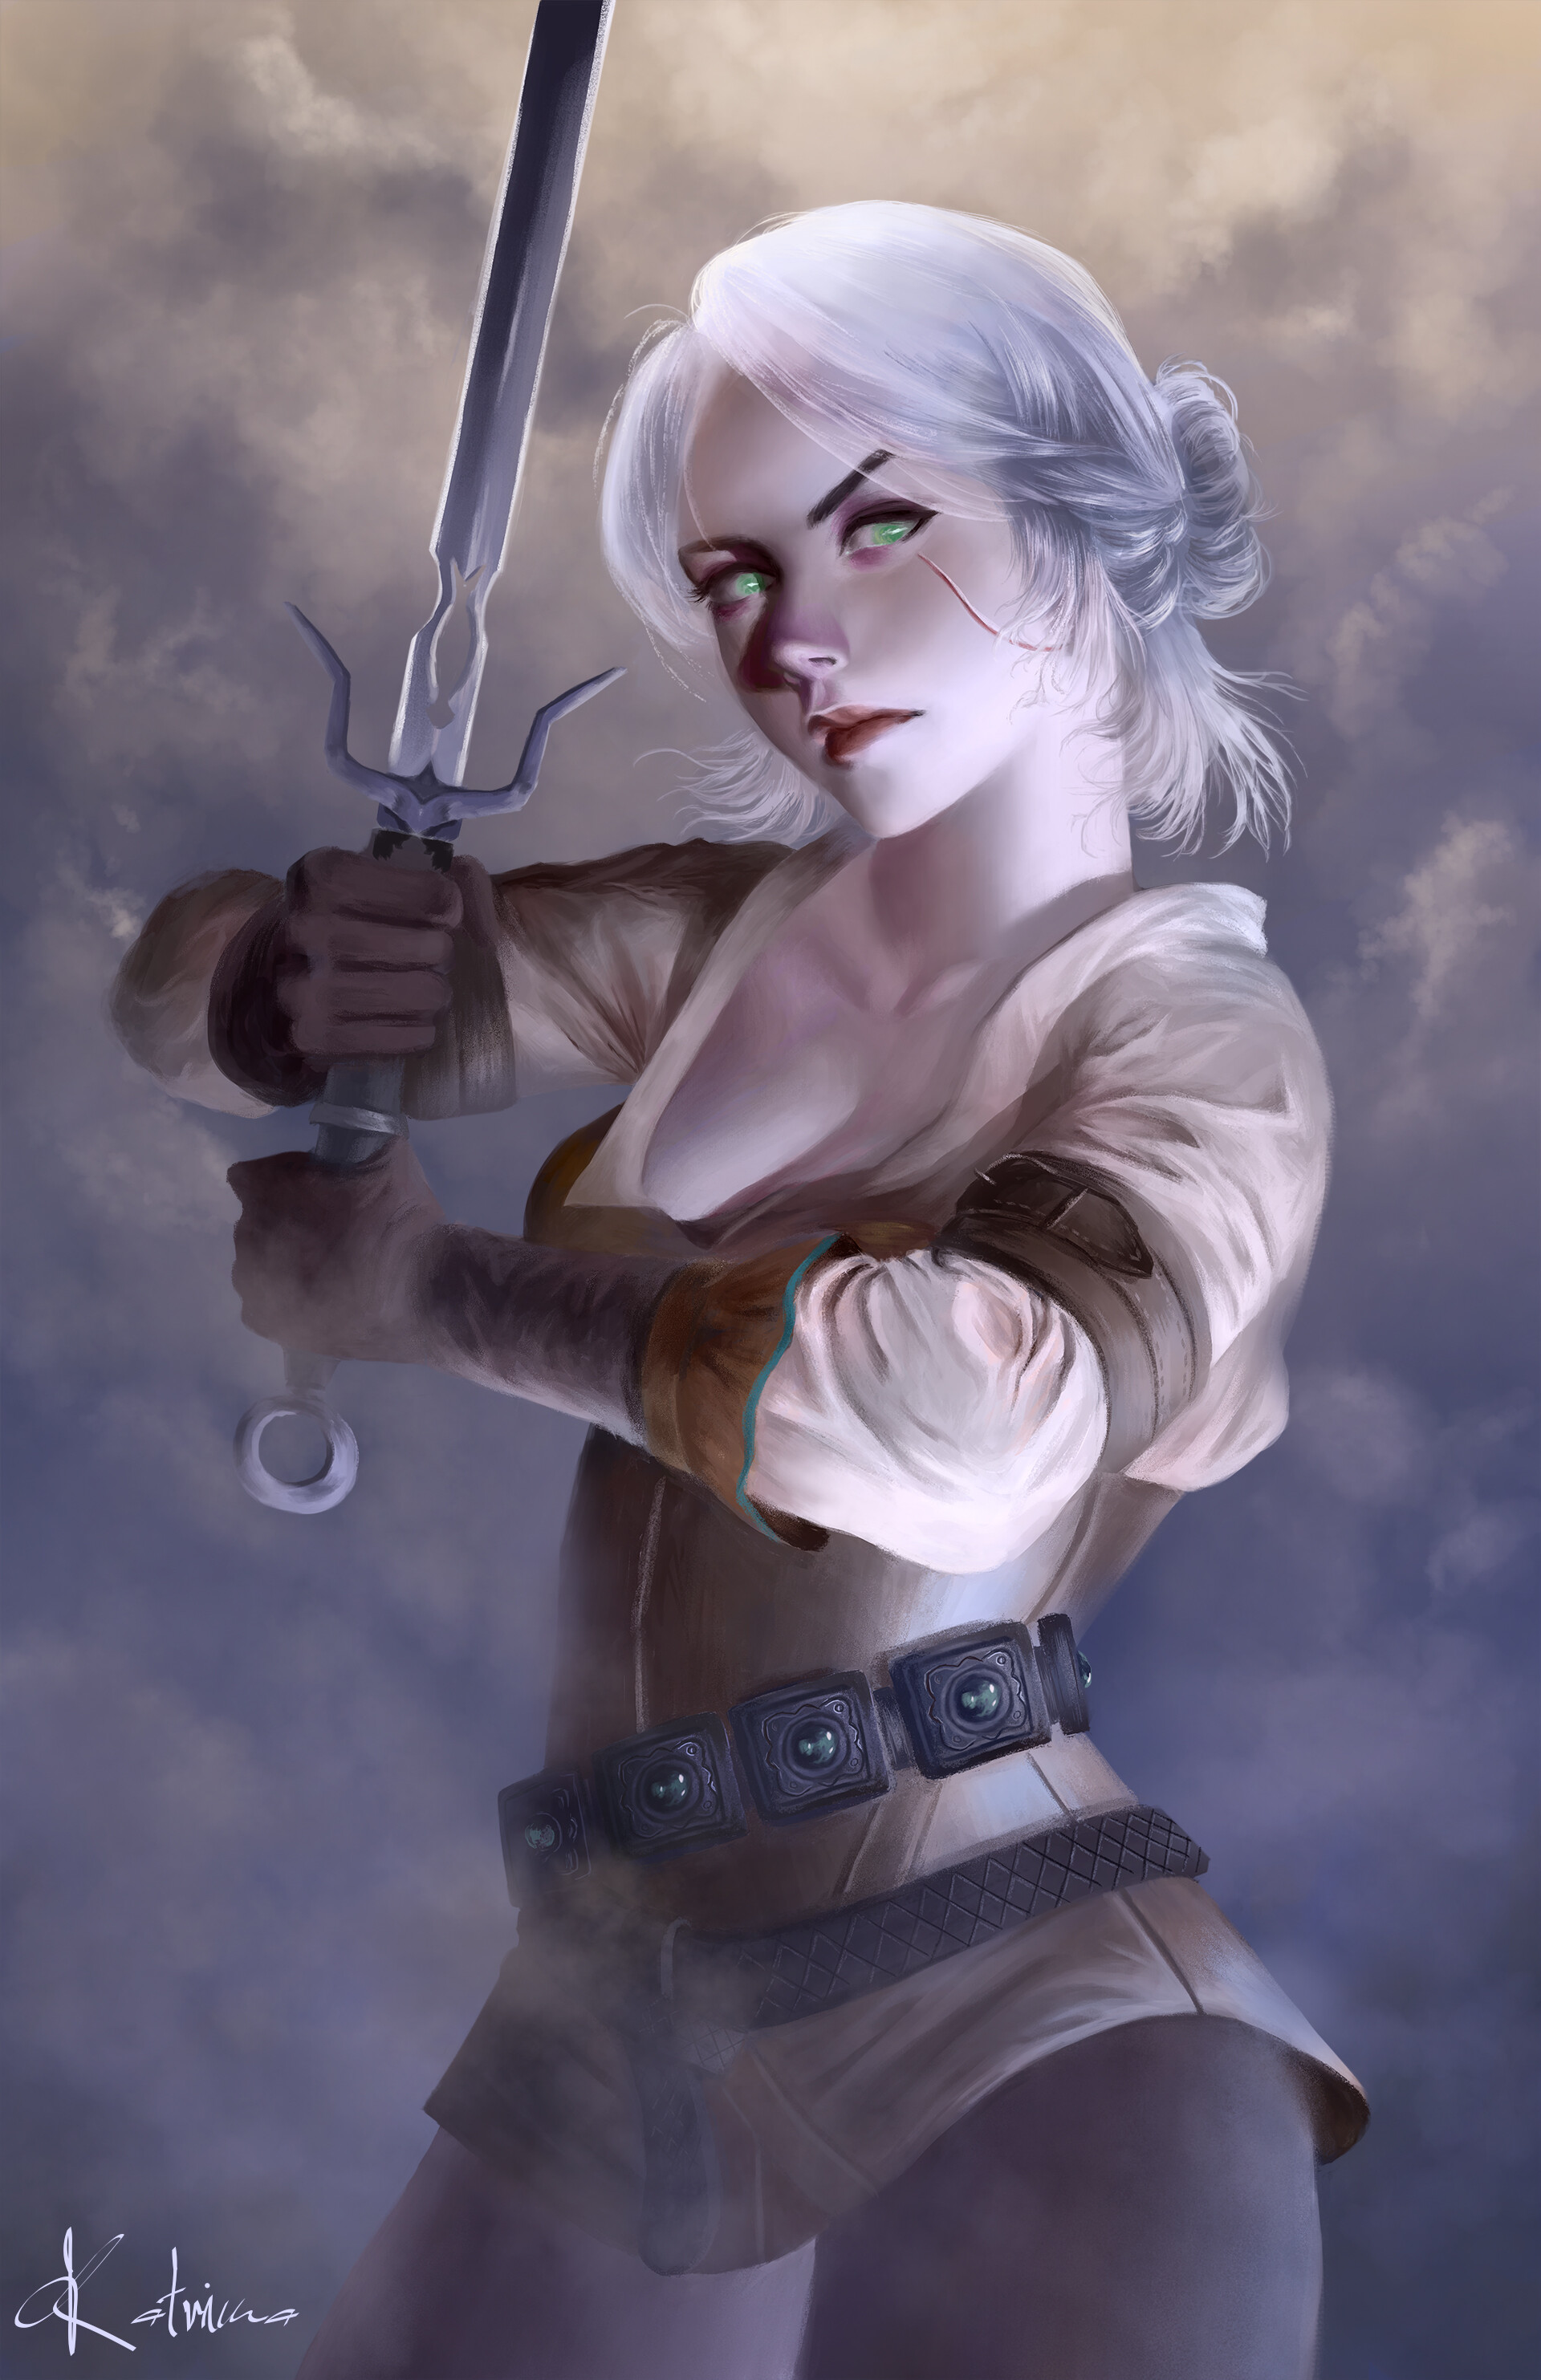 Emma Ronkainen Sword Video Game Characters Ciri Scars Video Game Girls Video Game Art Digital Art Ci 1920x2966